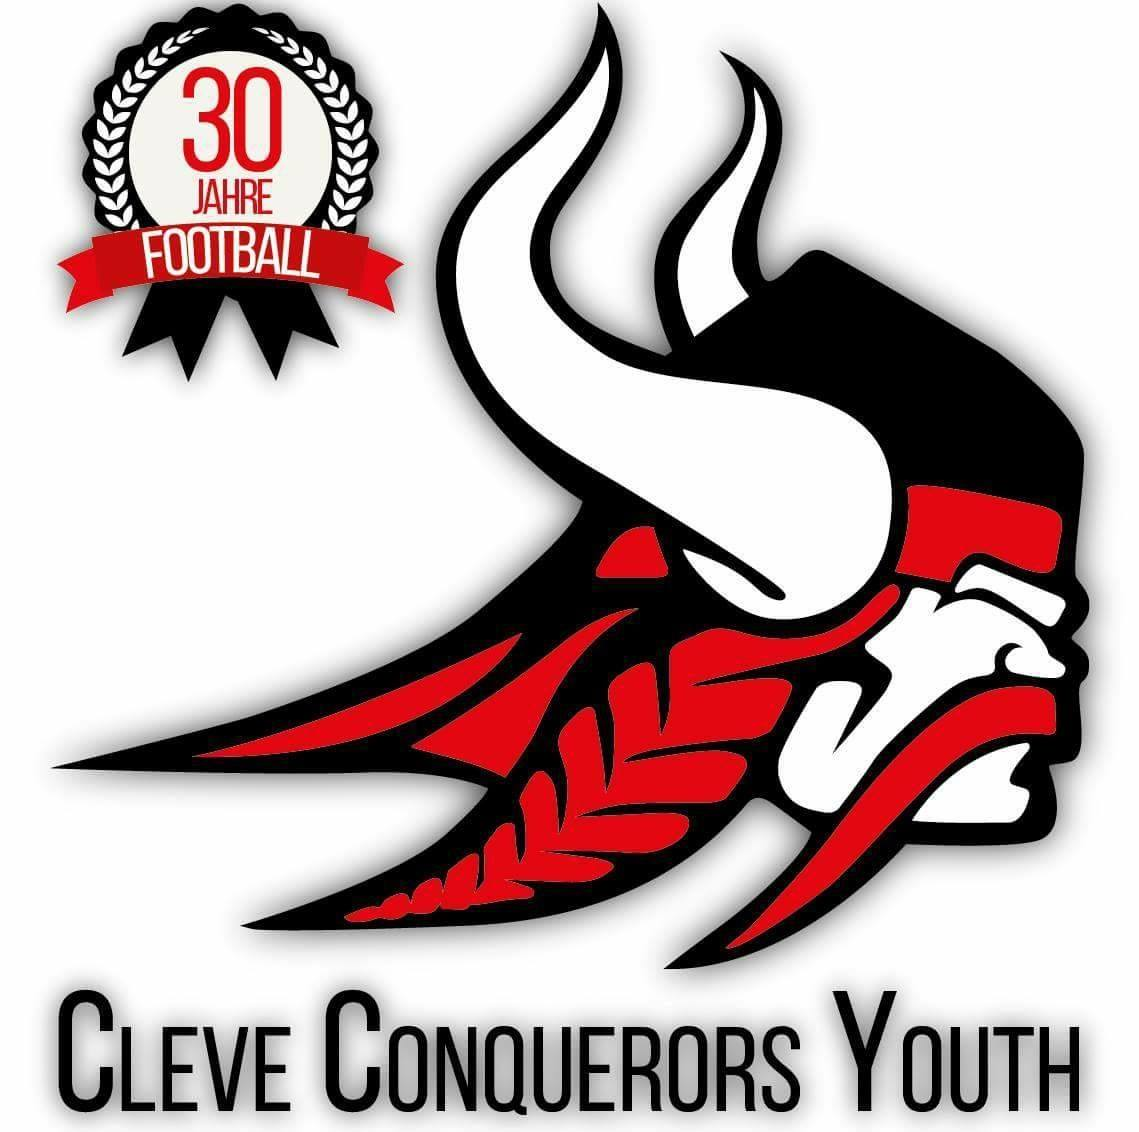 Cleve Conquerors